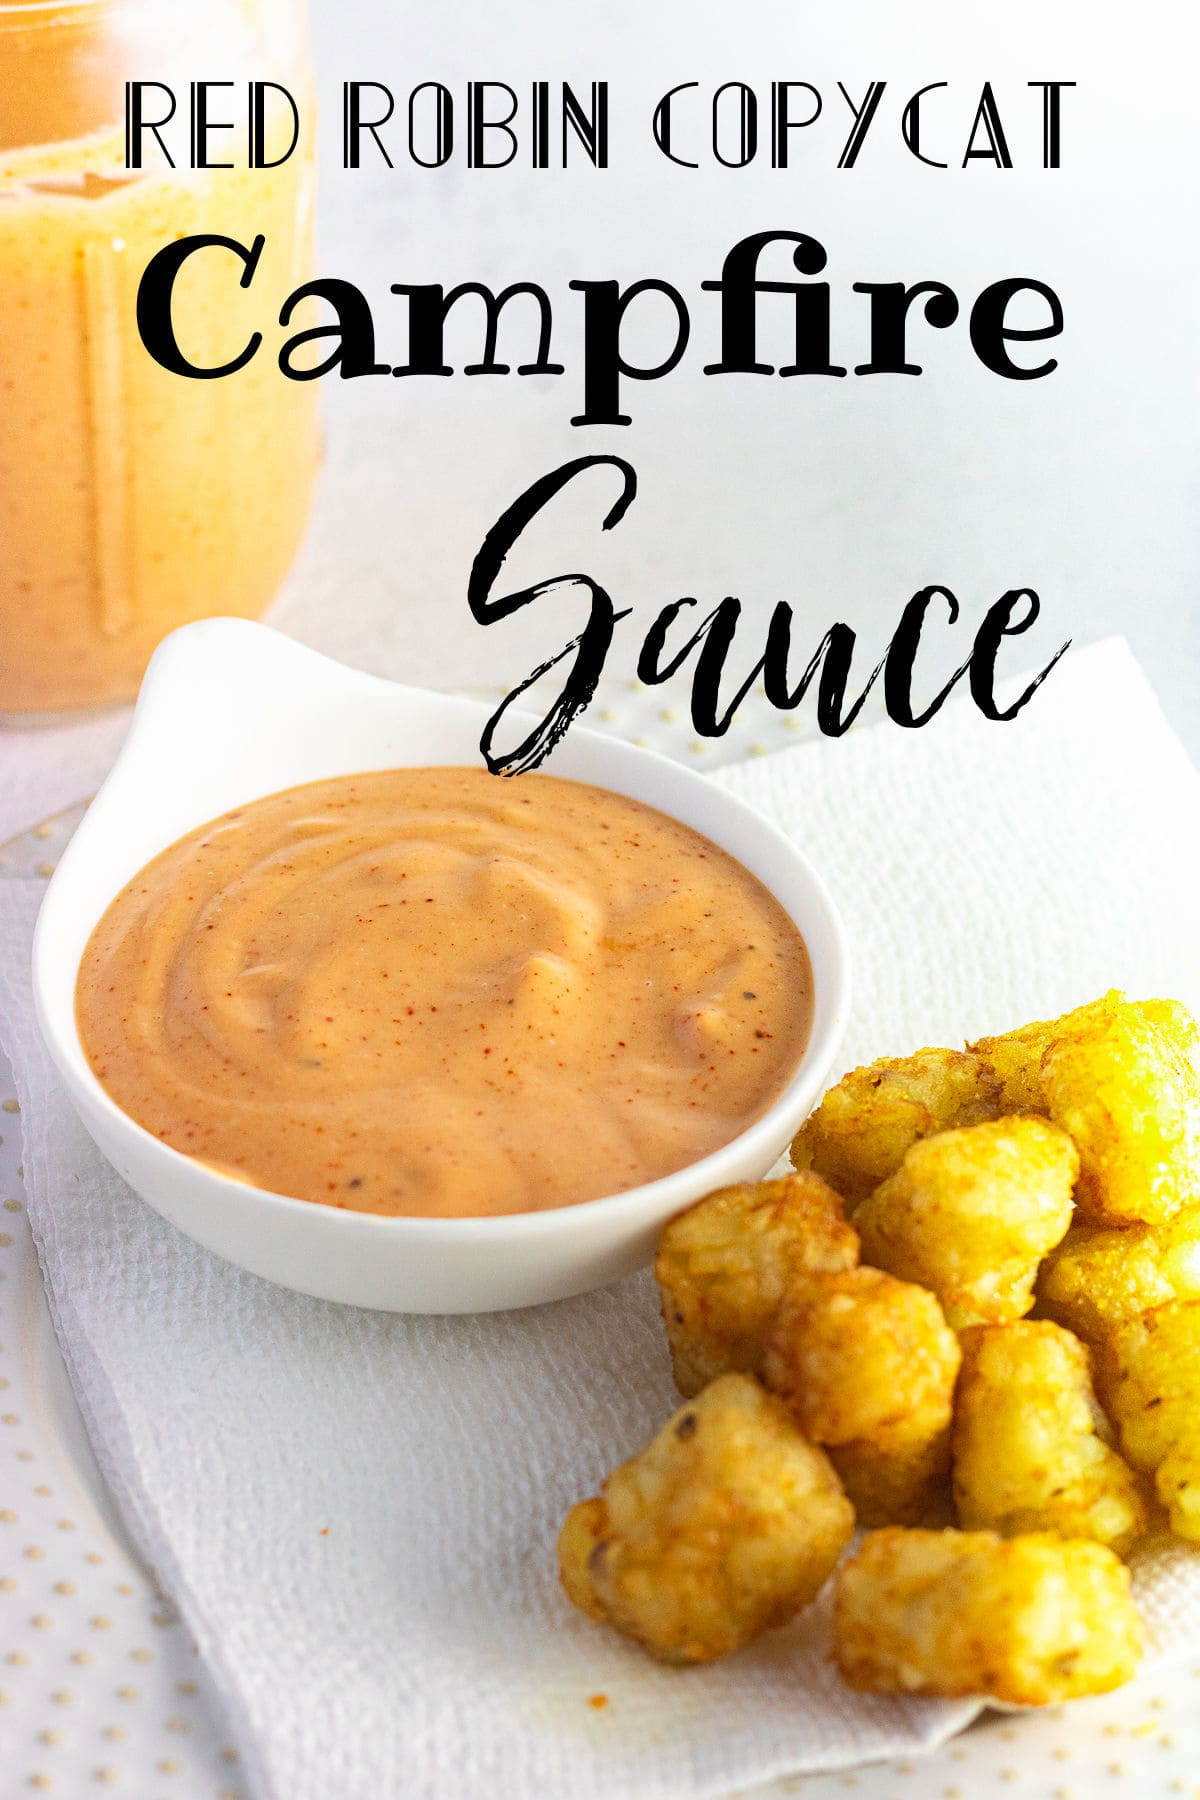 The orange dipping sauce in a bowl on a table.